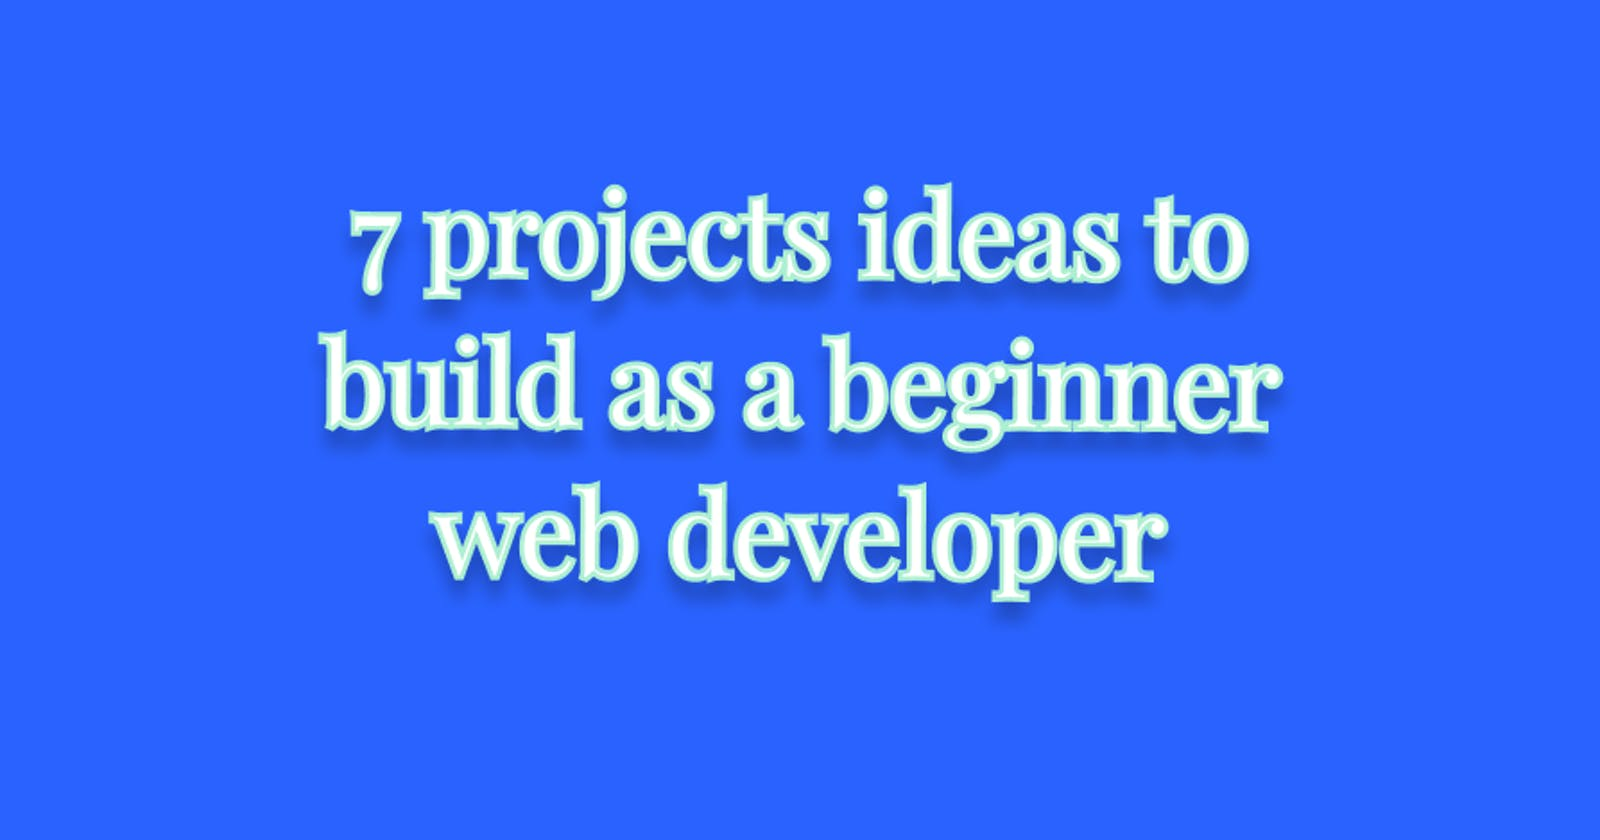 7 projects ideas to build as a beginner web developer (HTML, CSS and JavaScript only)